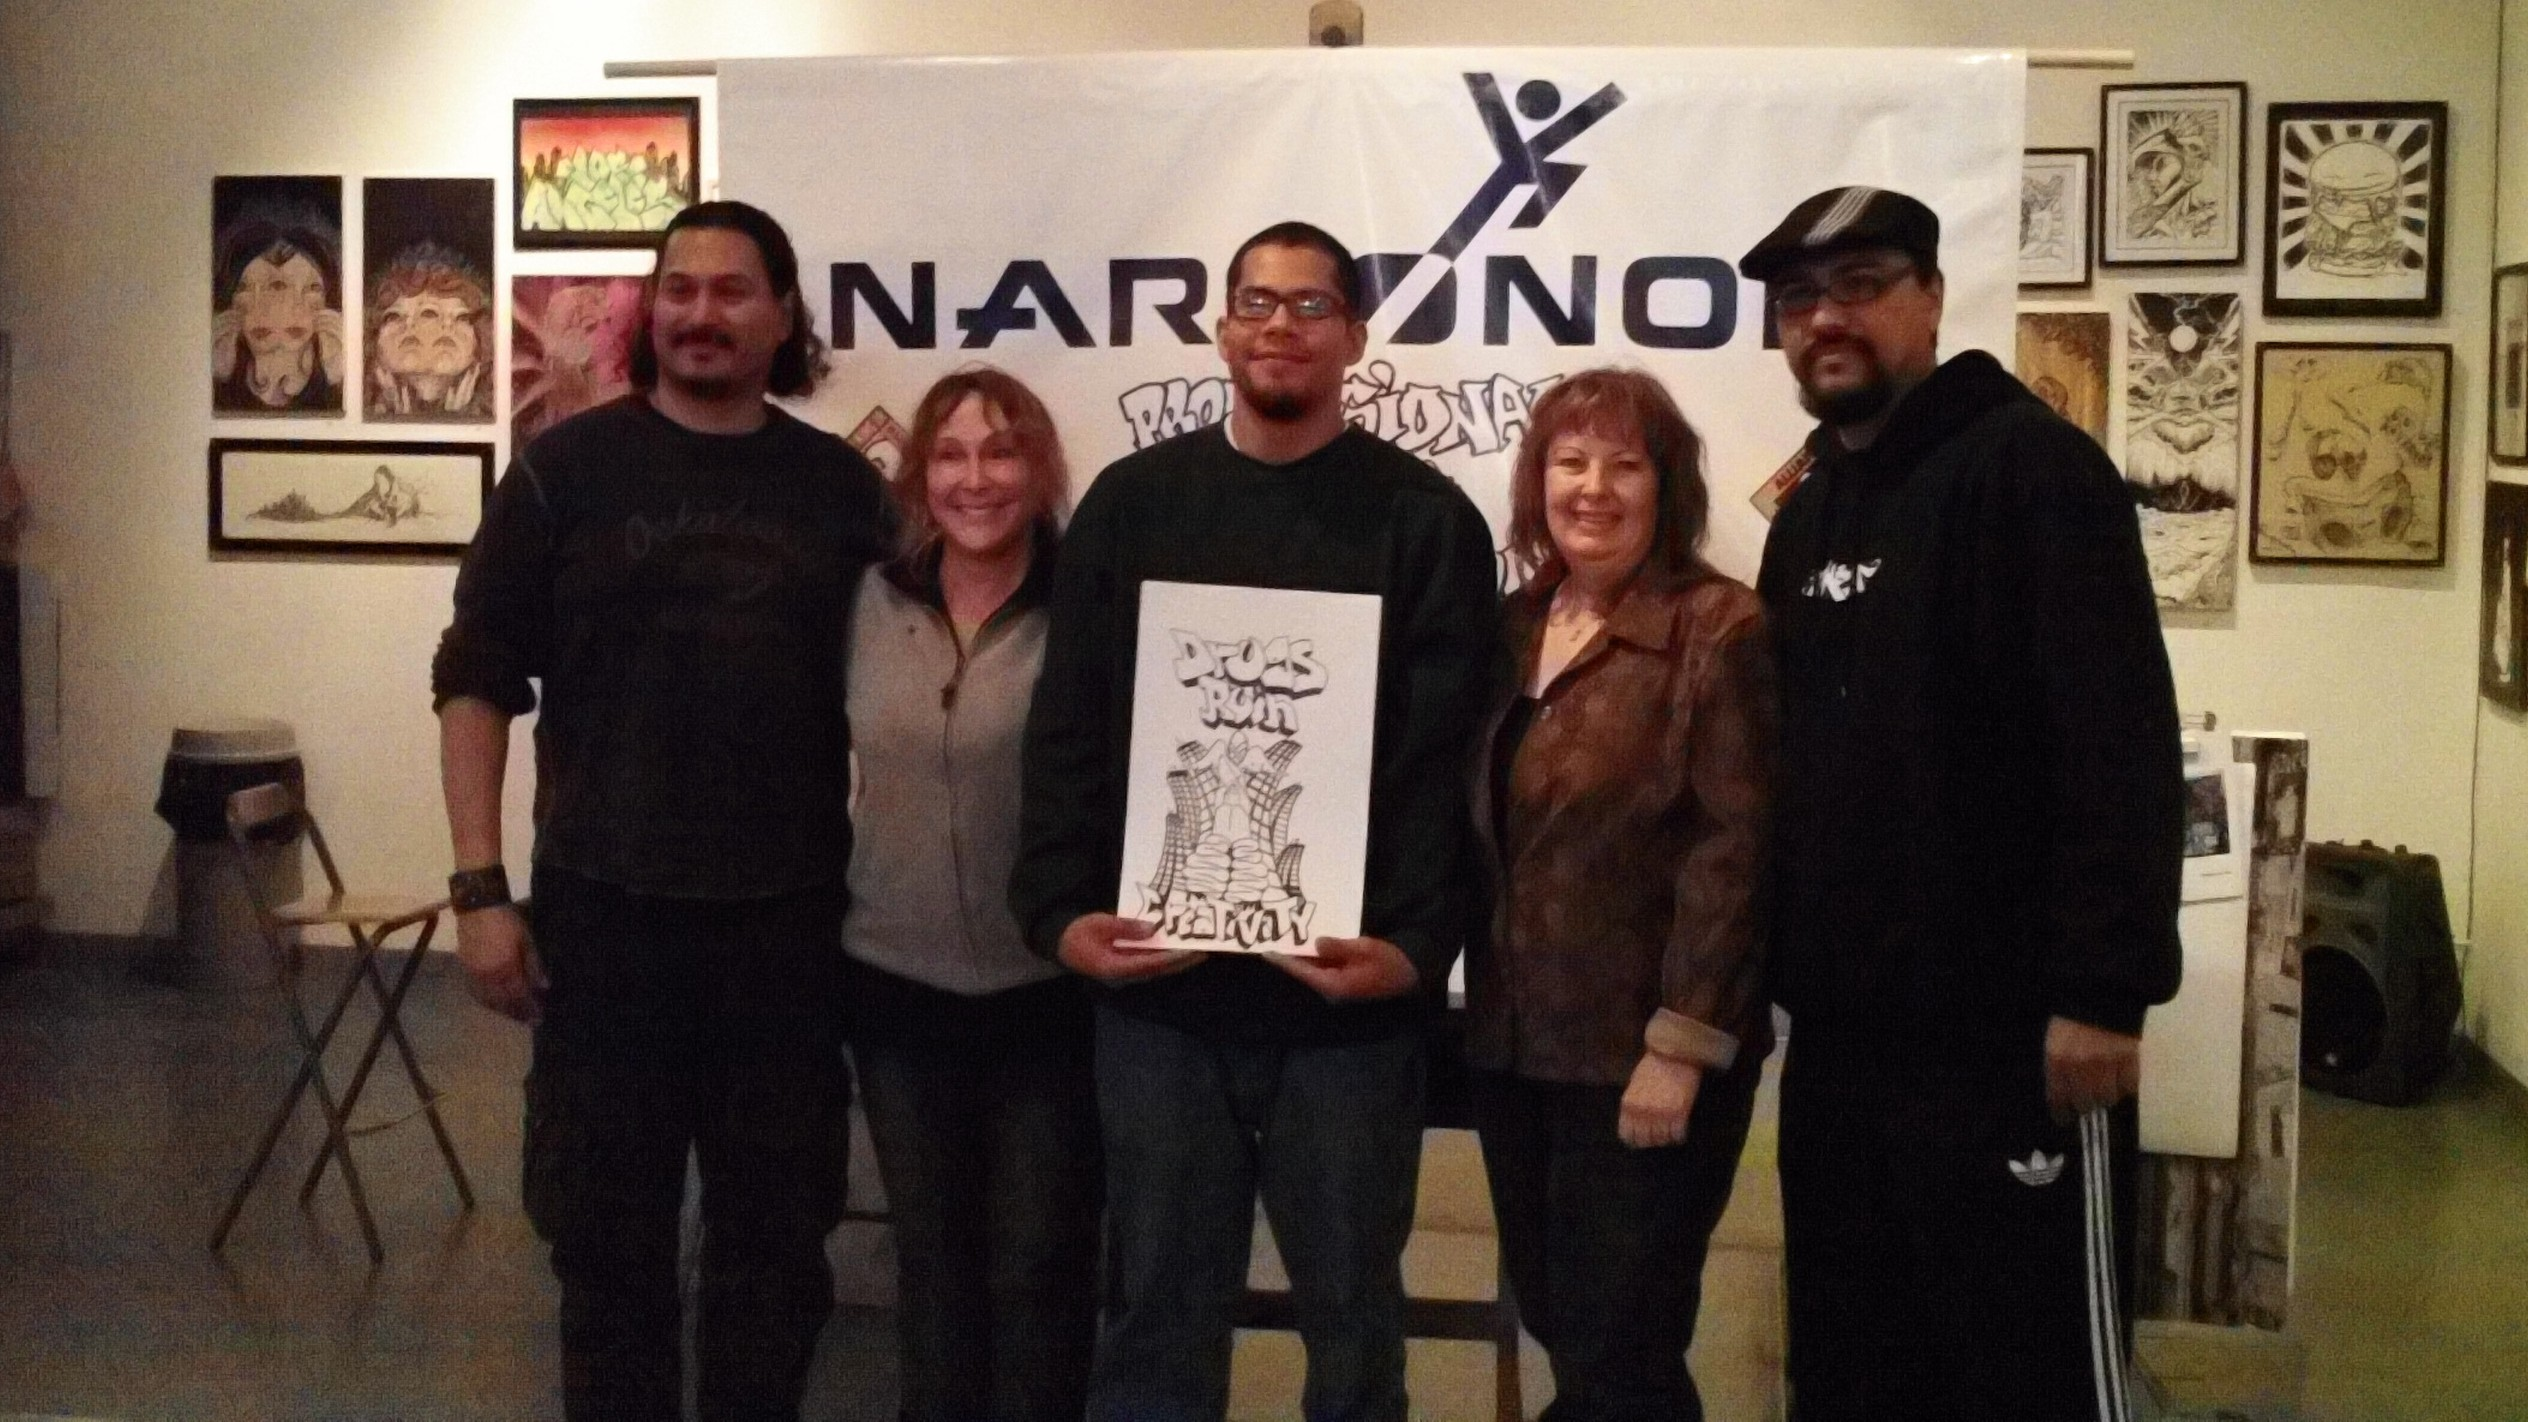 (from left) judges, Gino Montesinos, writer actor, Heidi Lemmon, President National Skateboard Association, Graff Battle Winner, Tony Anguiano, Exec Dir., Narconon Professional Drug Prevention, Teddy Chambers, judge and owner Crewest Gallery, Man One